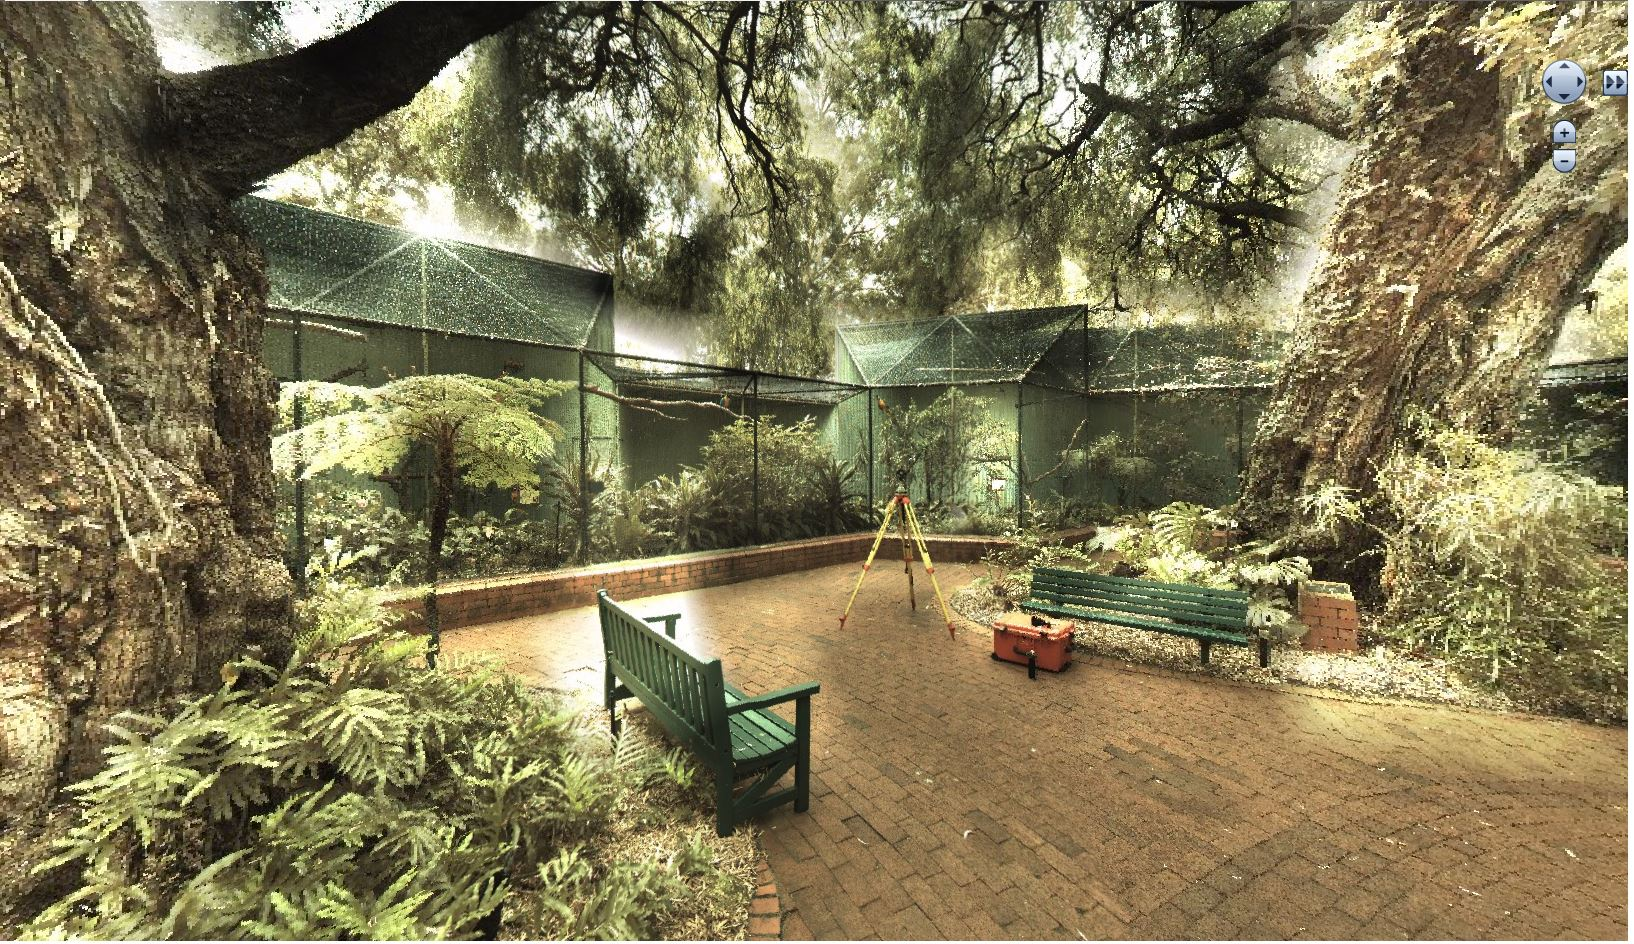 Perth Zoo 3D laser scan